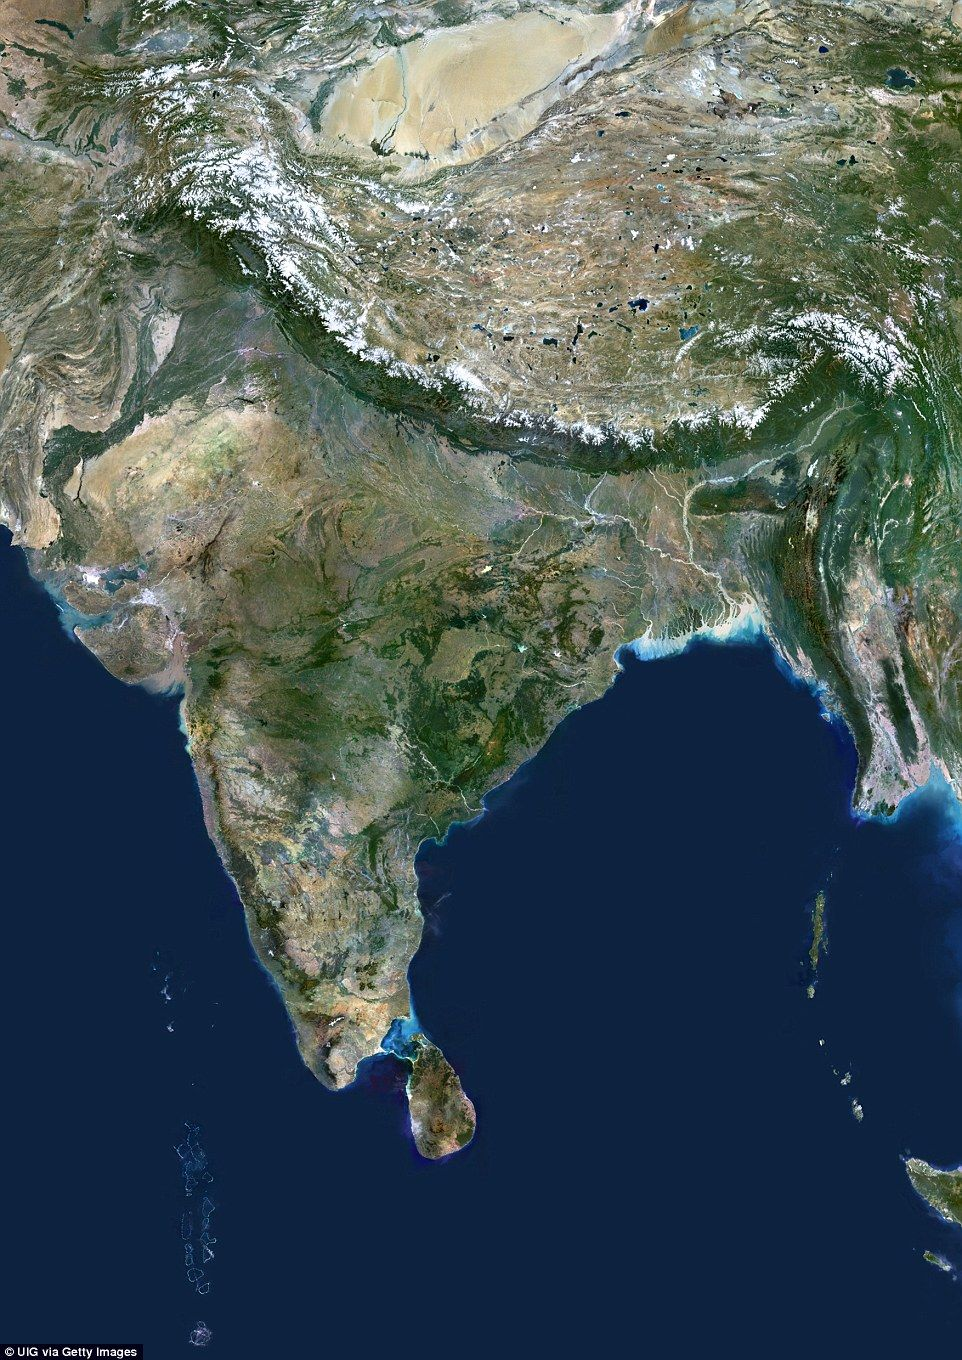 This satellite image shows South Asia bordered